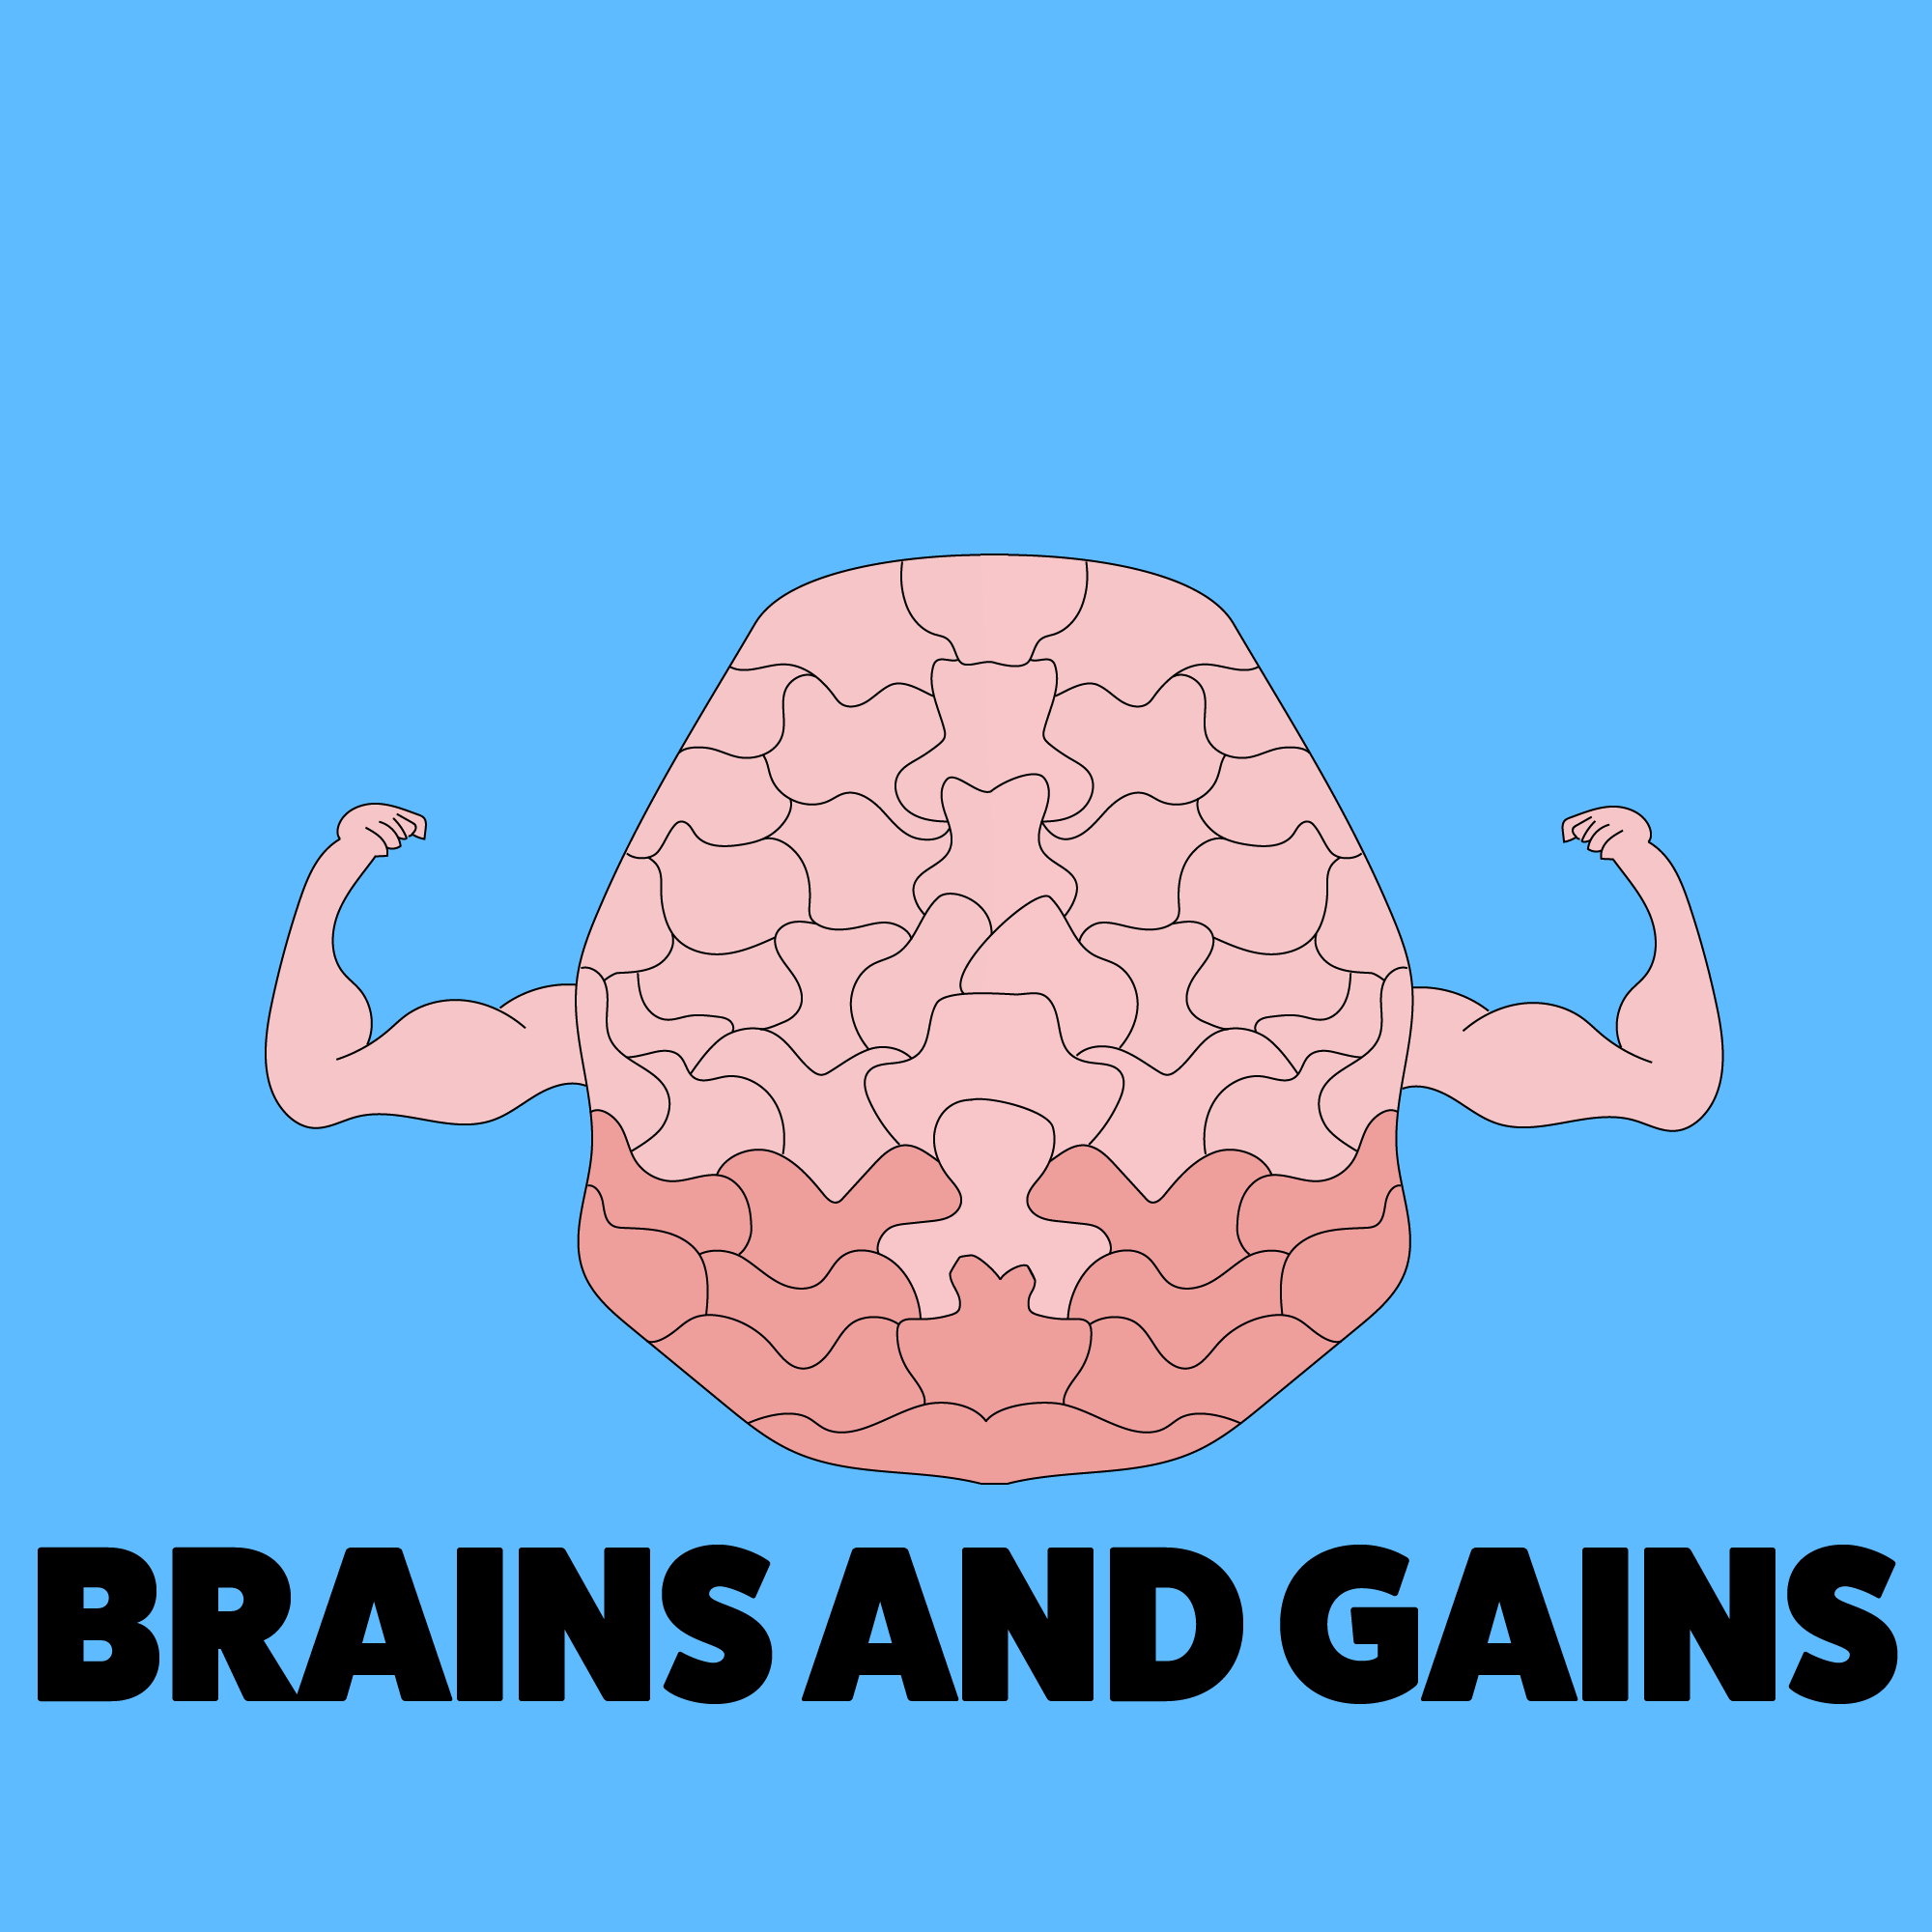 Brains and Gains